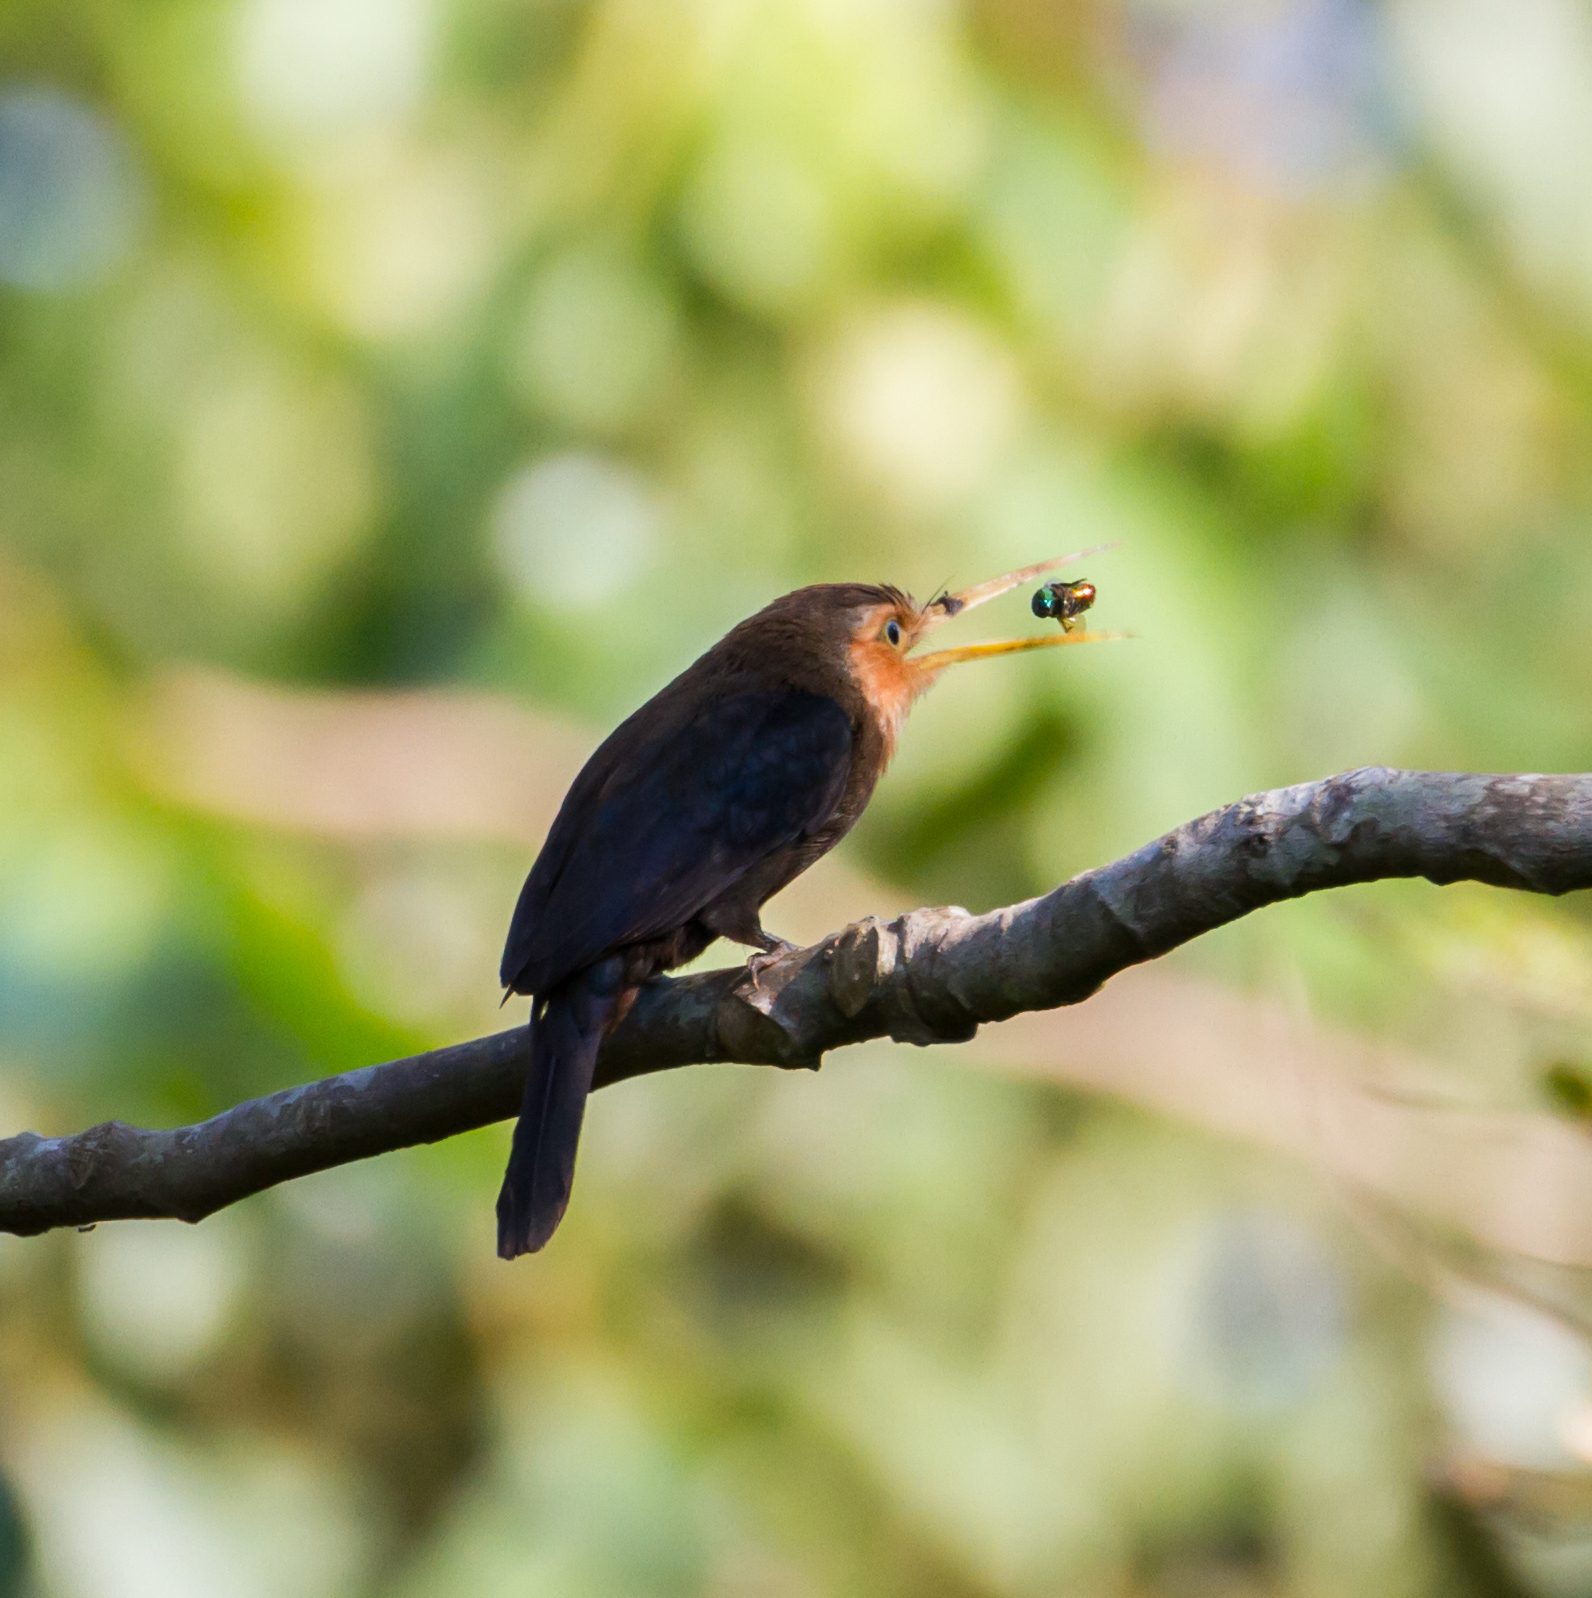 Image of White-throated Jacamar